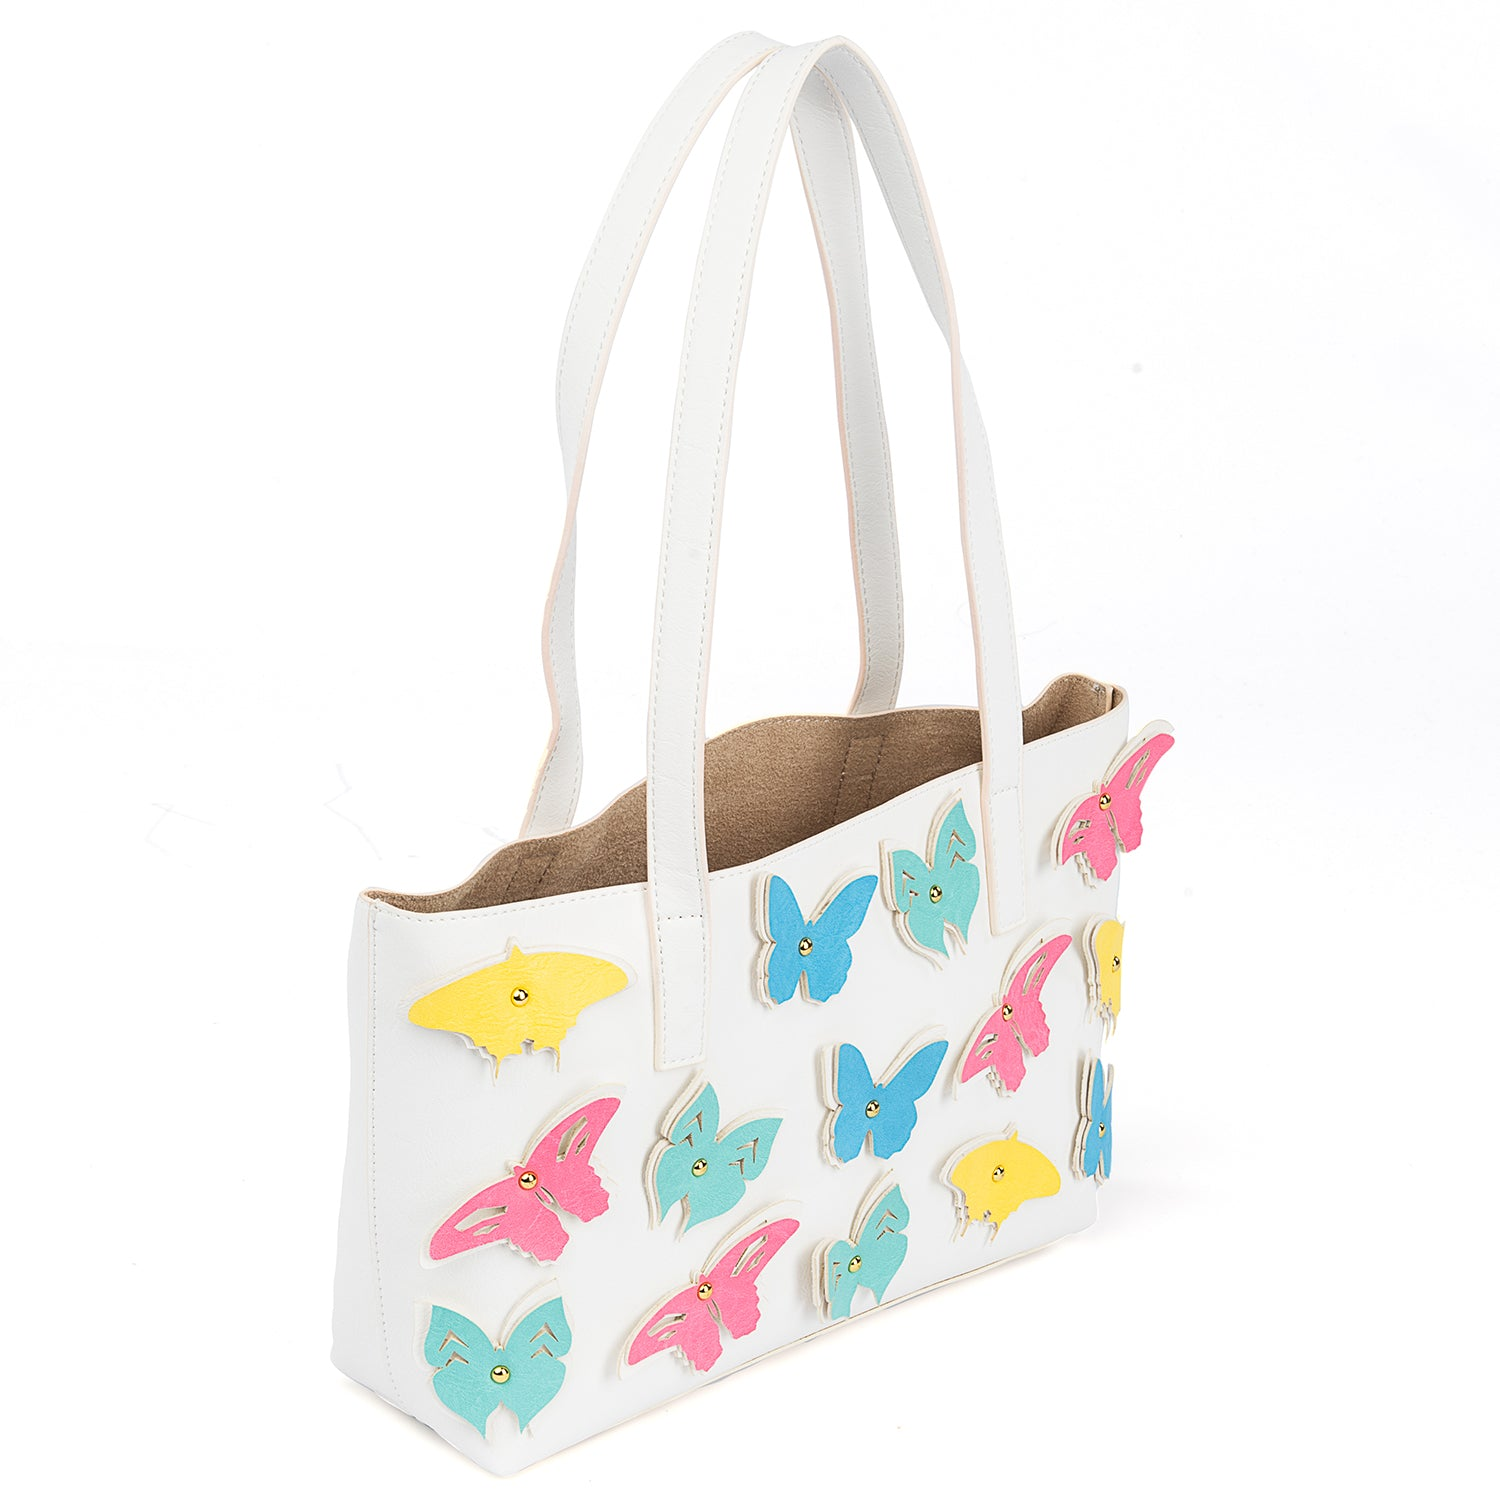 Butterflies small tote